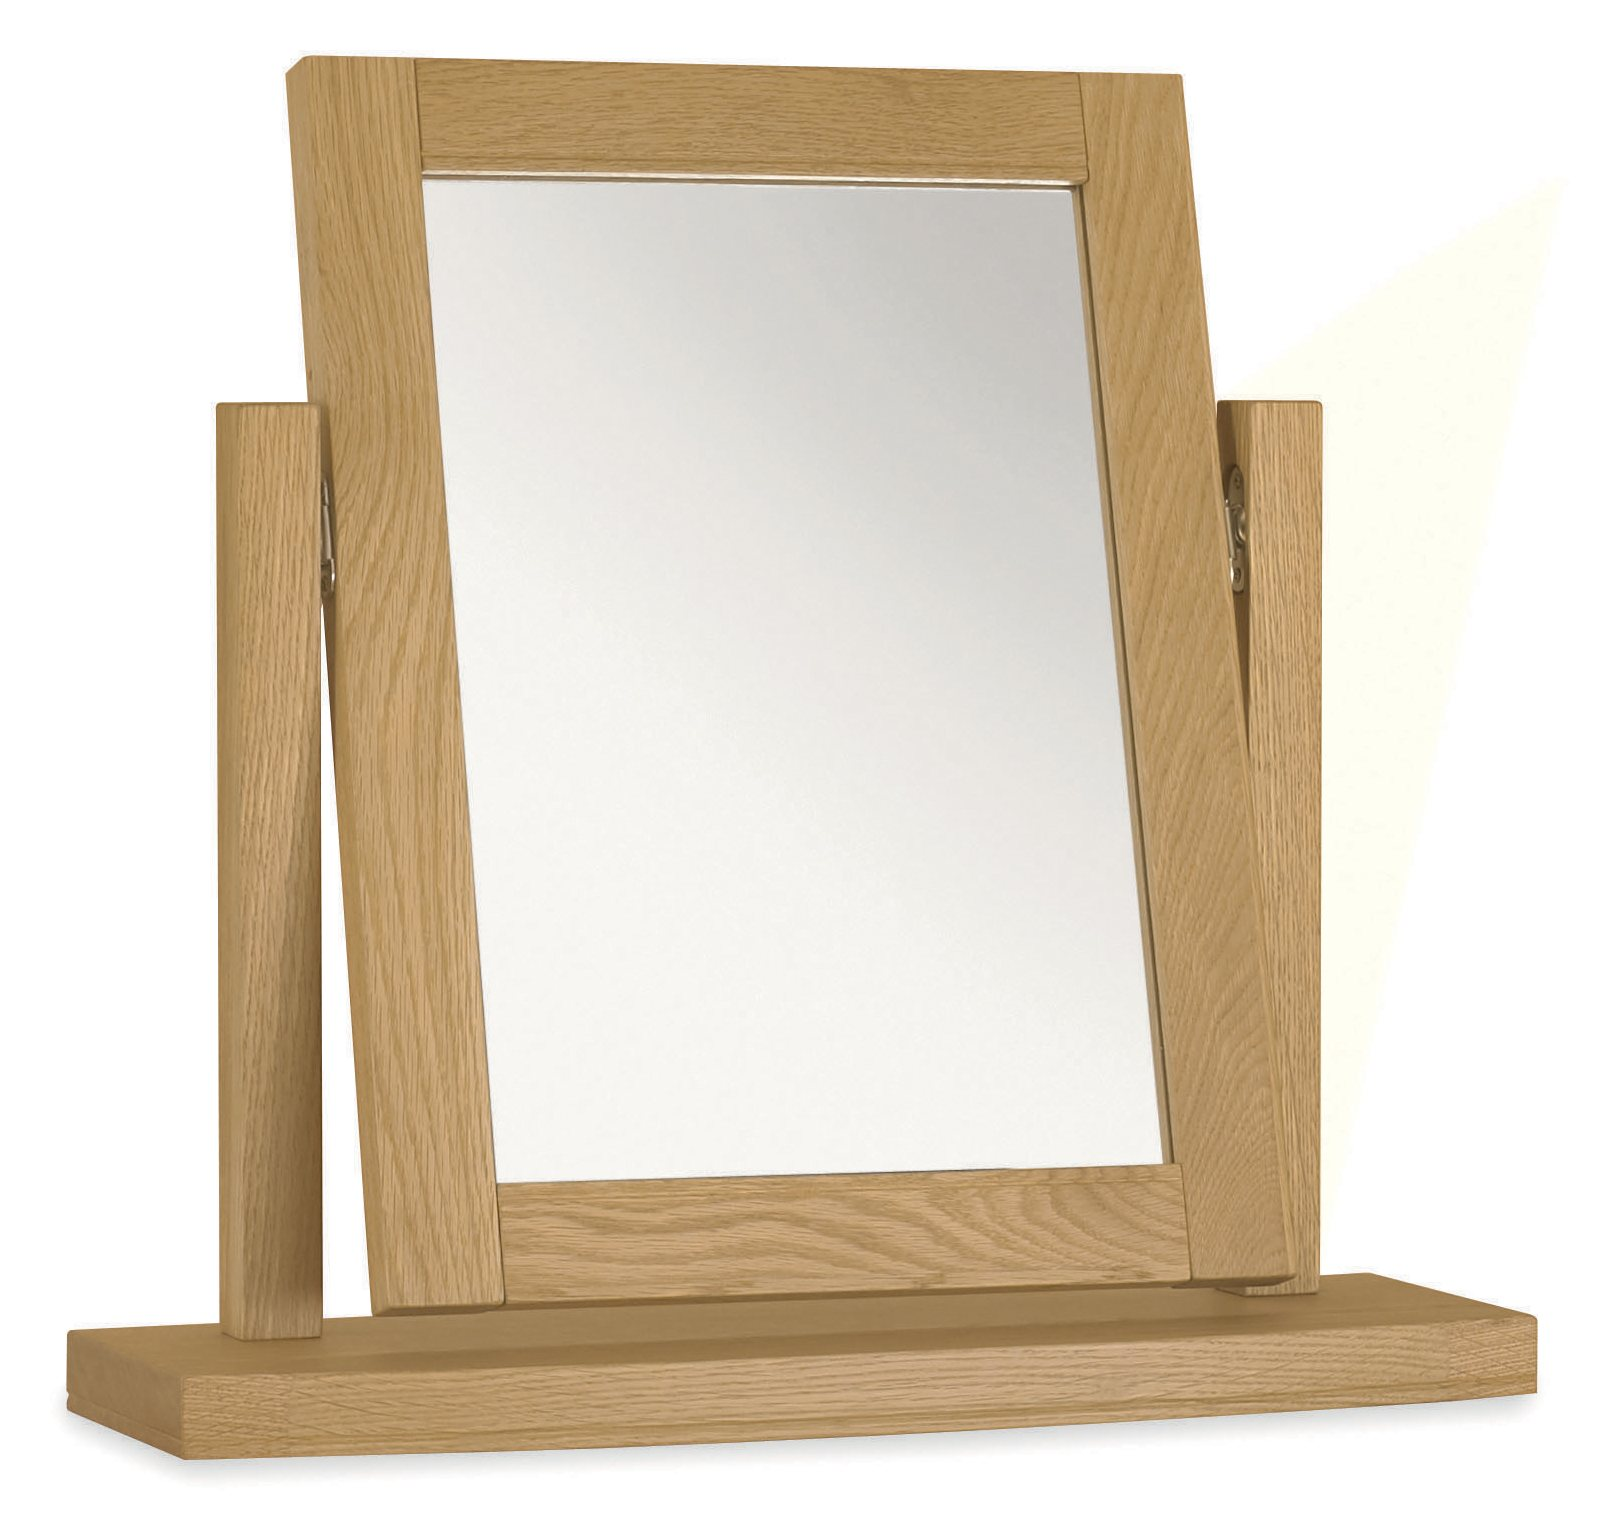 KYRA OAK BEDROOM MIRROR - L54cm x D18cm x H 52cm ANGLE VIEW